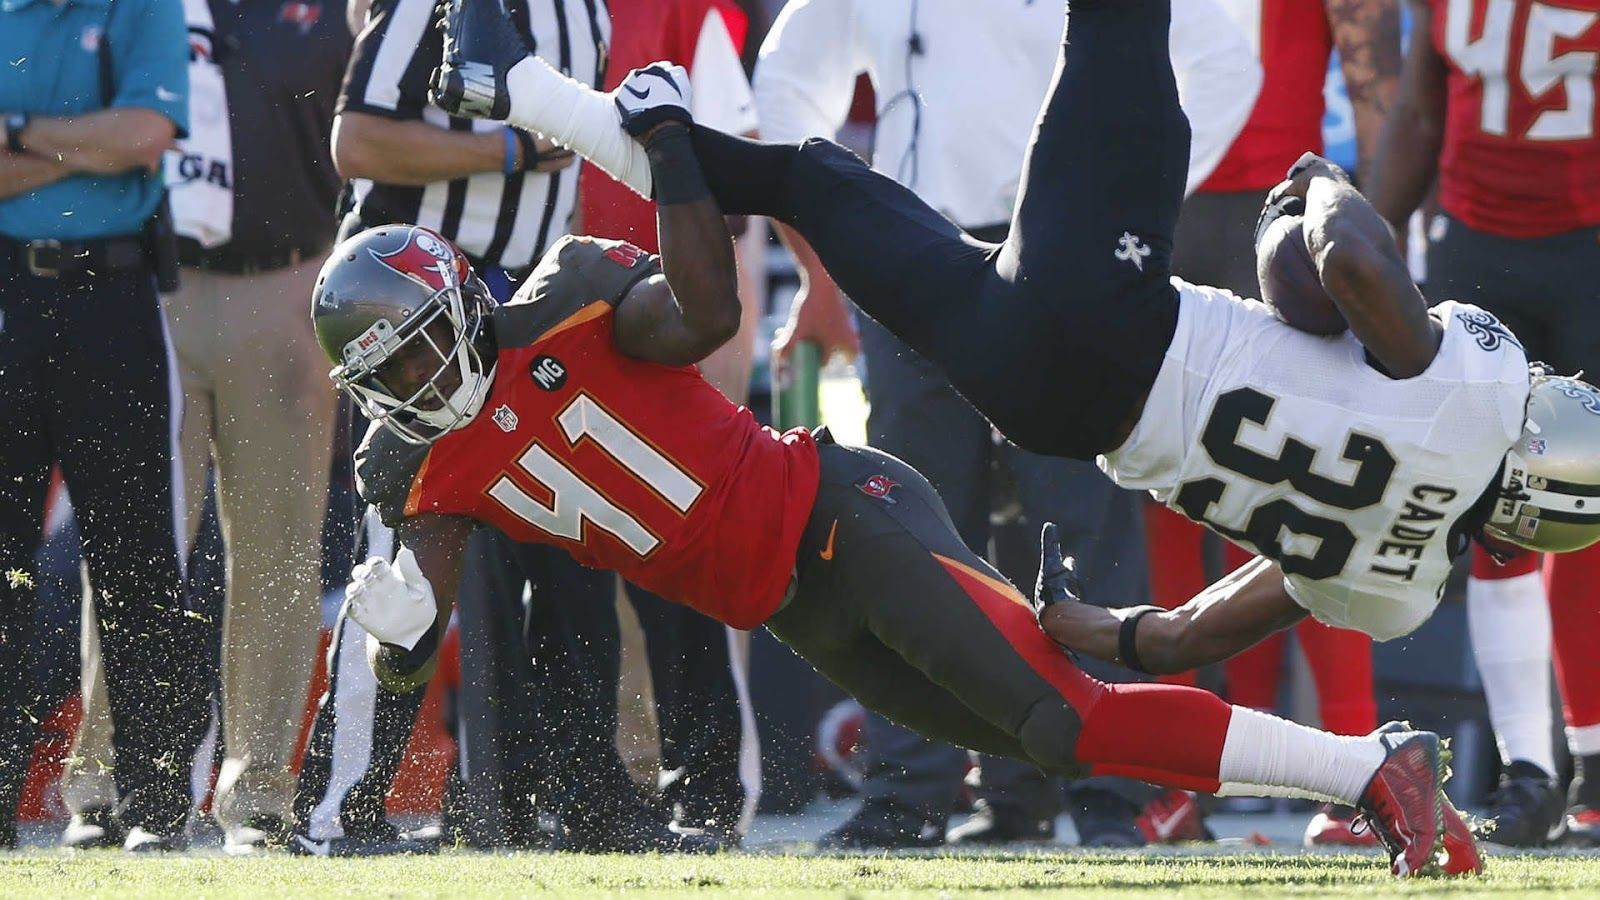 Tampa Bay Buccaneers Db C J Wilson Supposedly Loses Two Fingers In Fireworks Accident Nfl Football Pictures Fireworks Accident Football